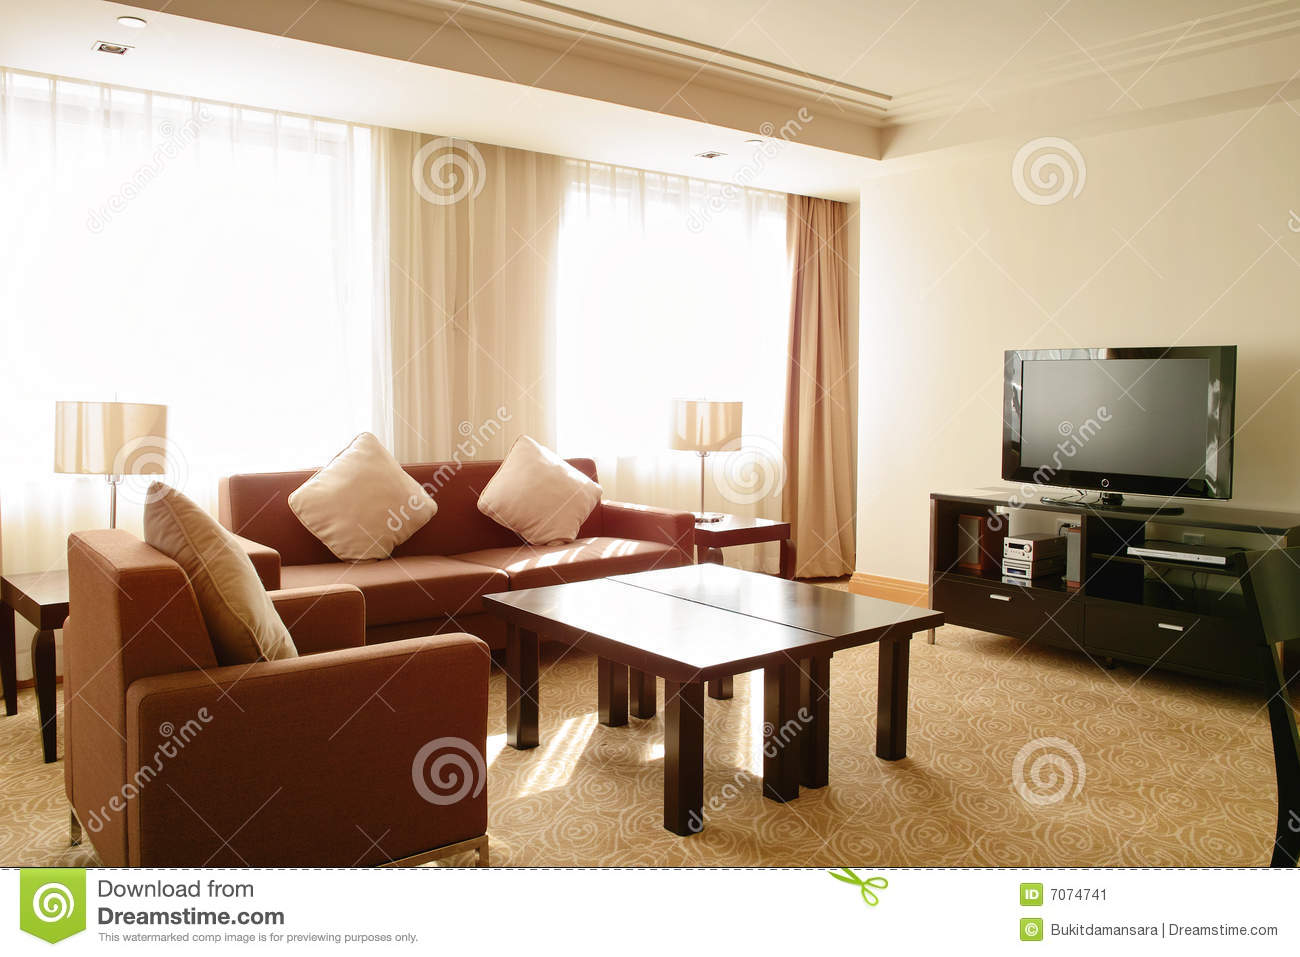 Normal living rooms - Interior Living Room